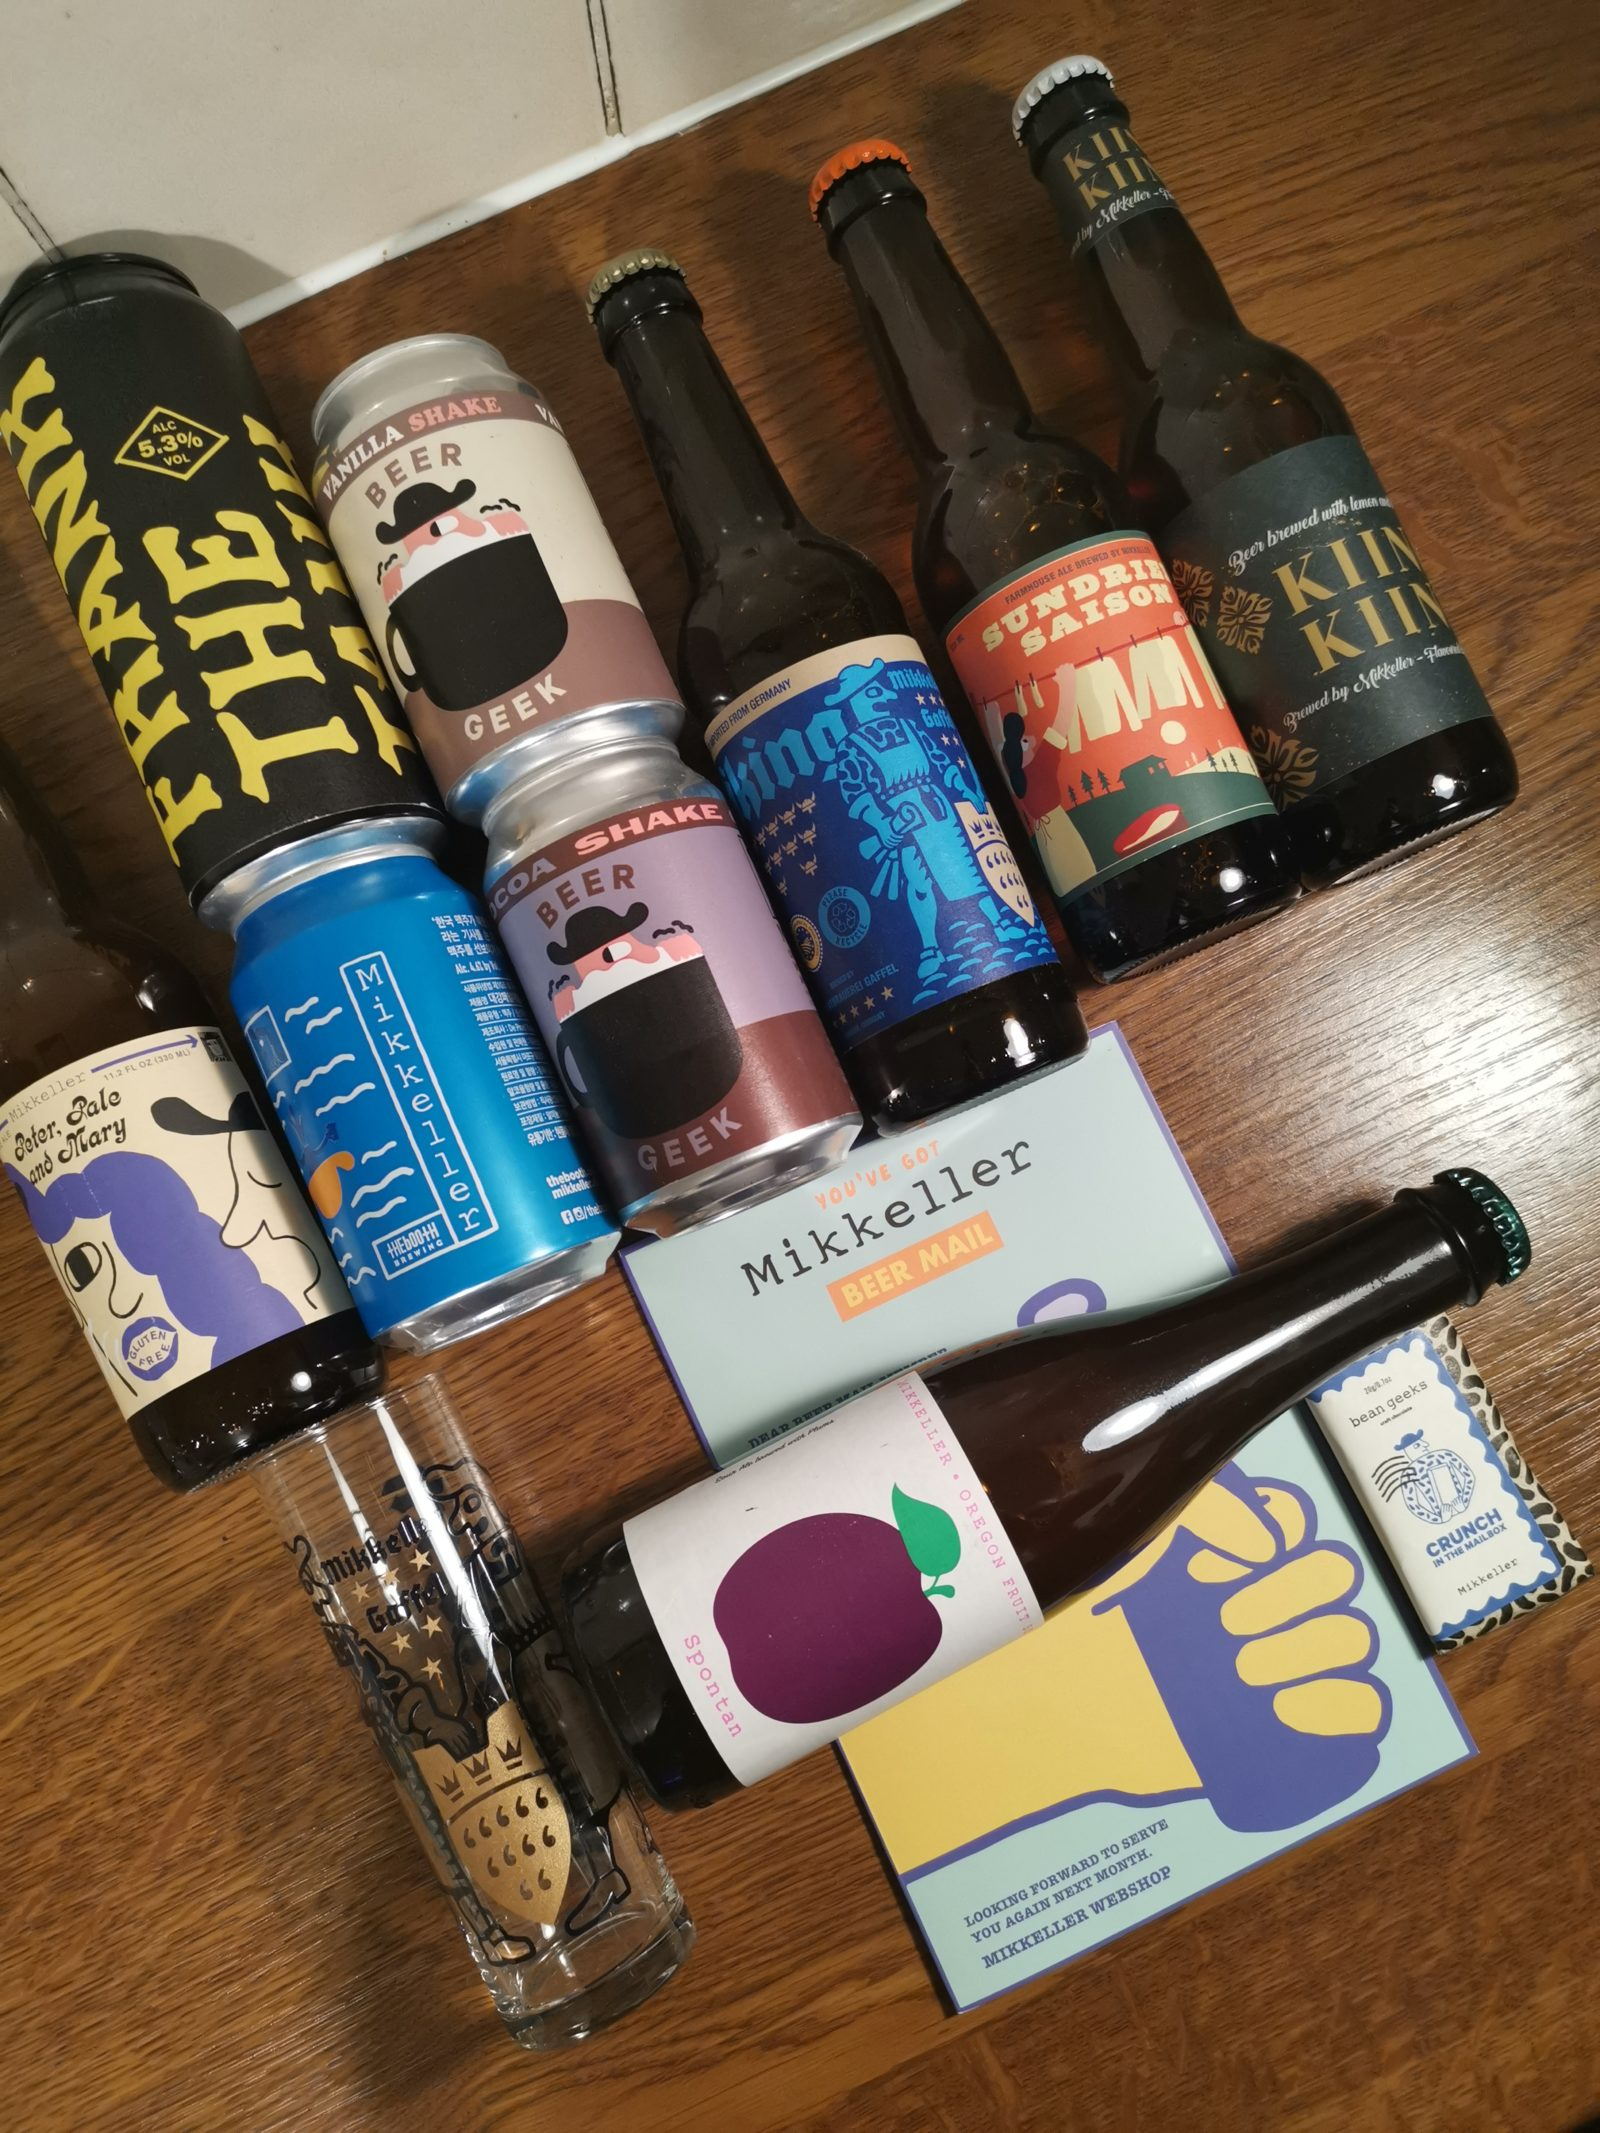 Mikkeller beer club discount code